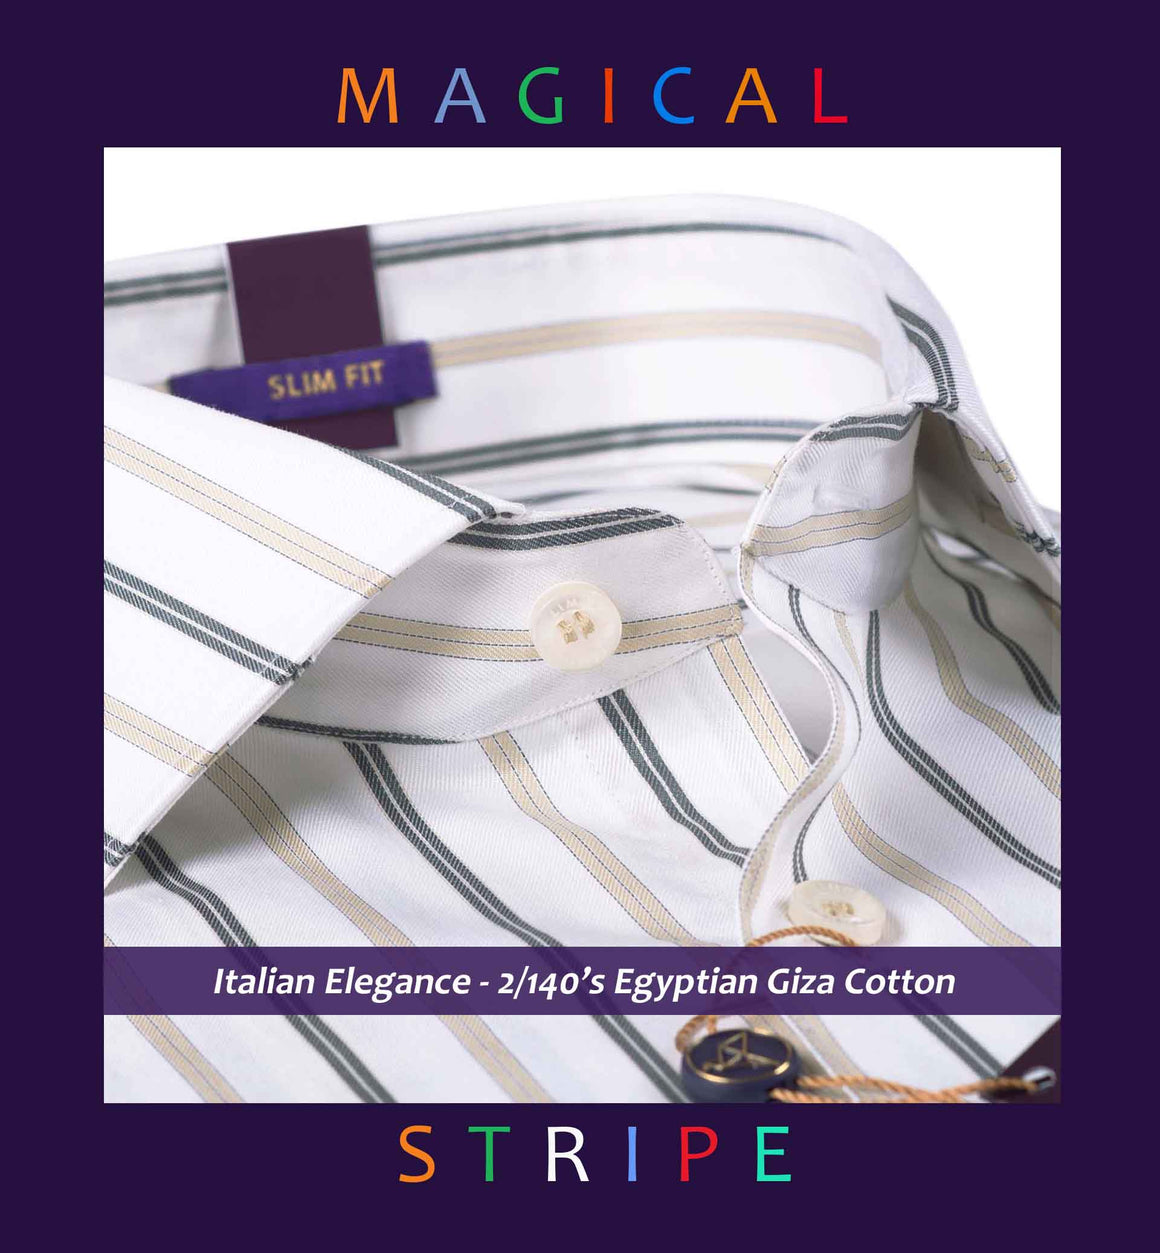 Cairoli- White & Beige Magical Stripe- 2/140 Egyptian Giza Cotton